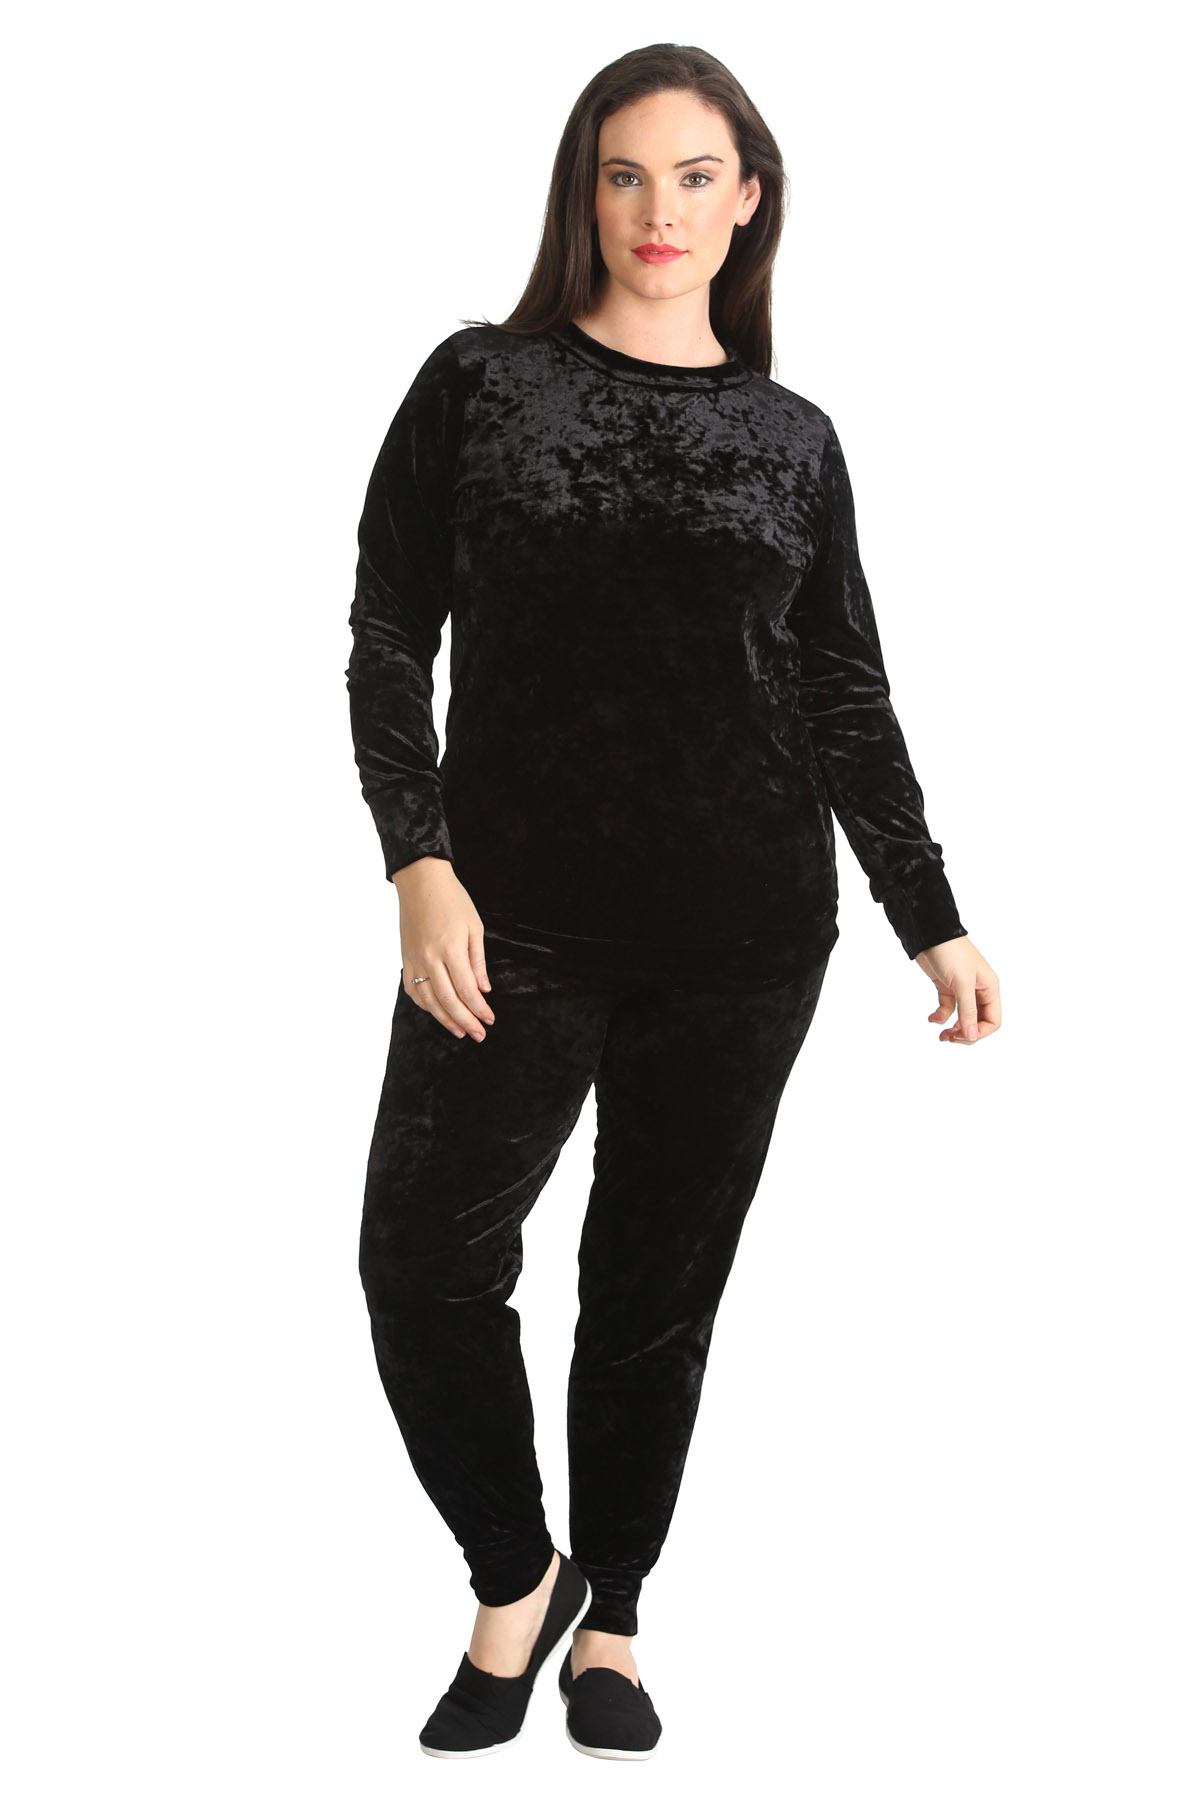 Women's tracksuits come in a variety of designs, prints and colours to create sleek looks that will fit seamlessly into your workout and lifestyle rotations. Shop Nike tracksuits for men, boys and girls, and be sure to explore the complete collection of women's jackets and trousers for additional options.